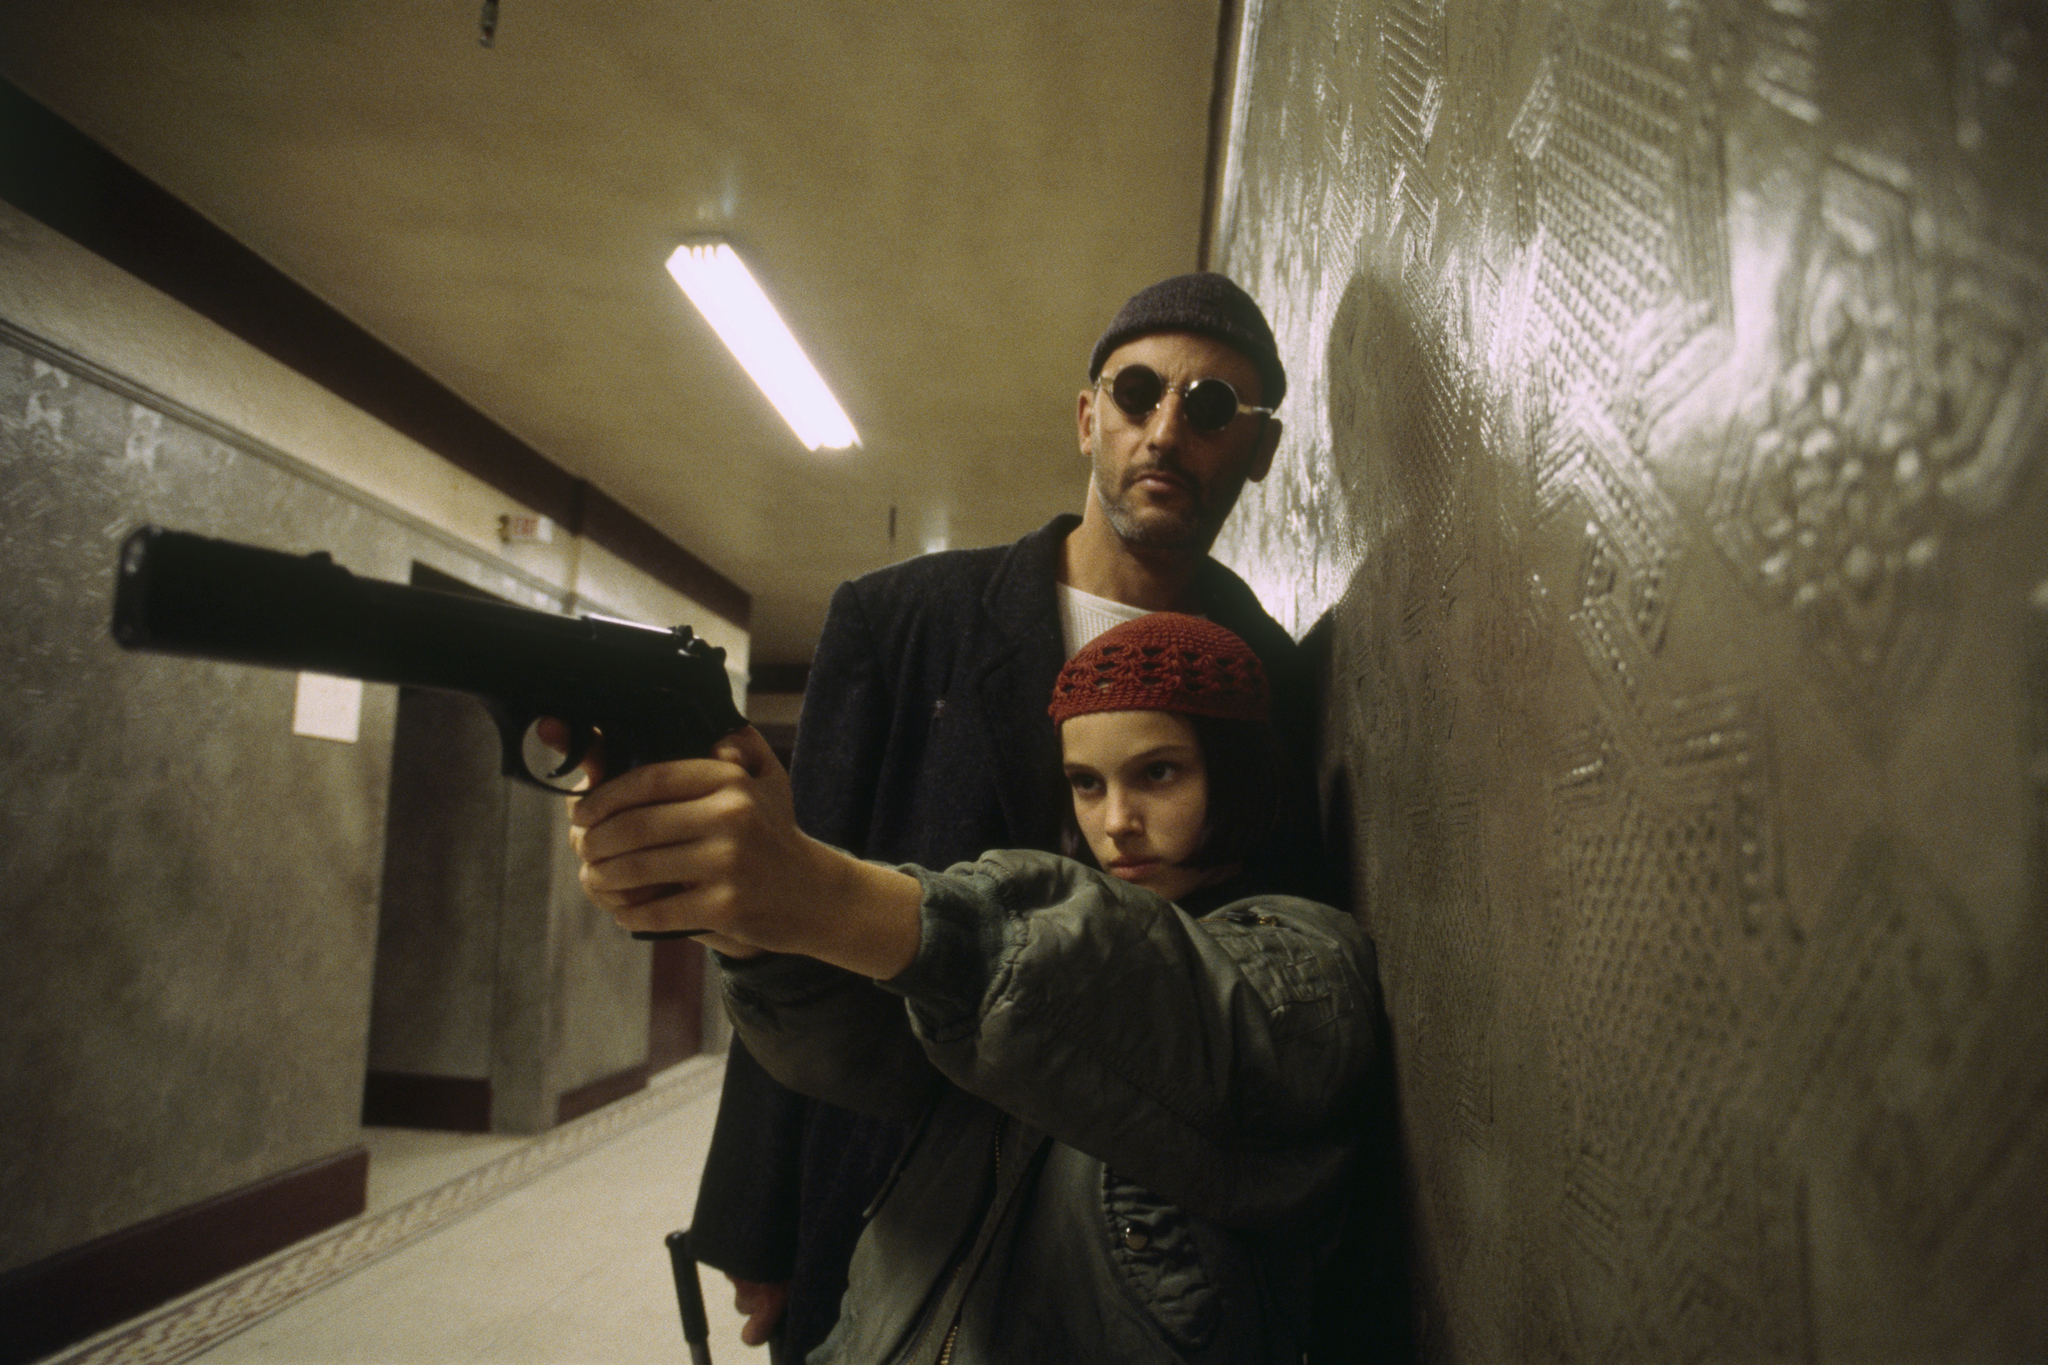 Natalie Portman and Jean Reno in Léon (1994)